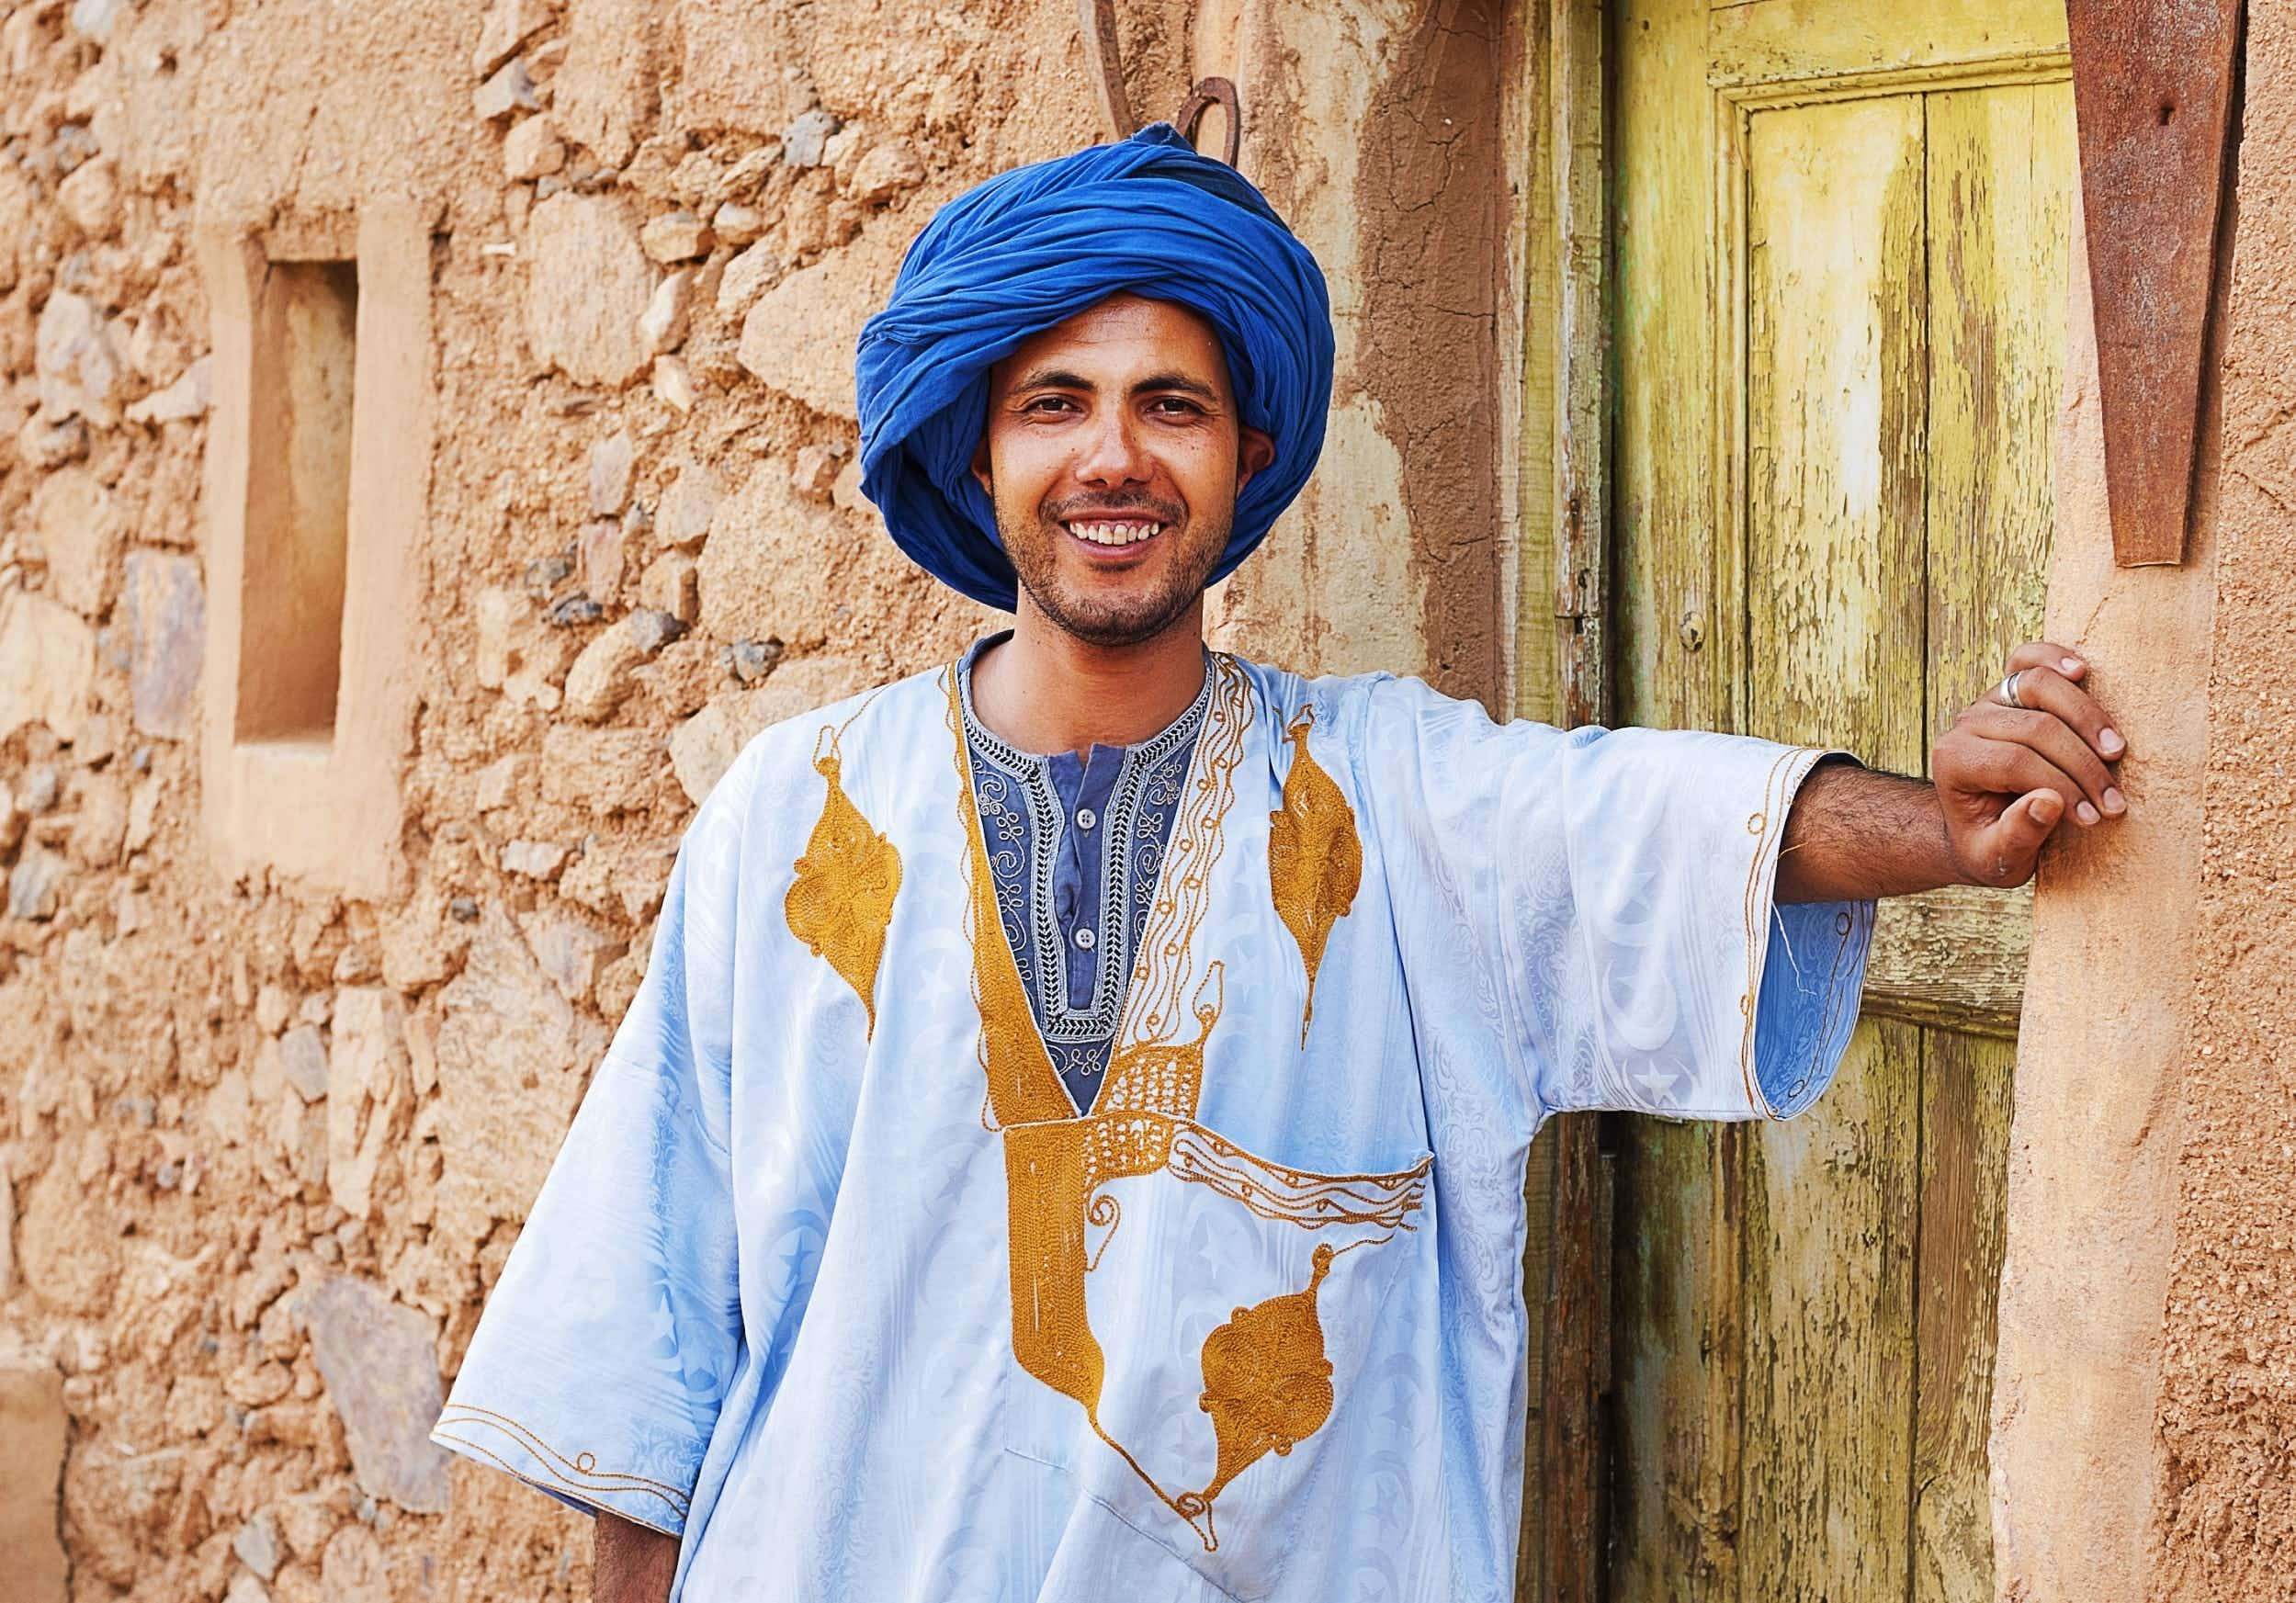 The Berber people and their colourful culture are always a memorable part of travellers' journeys © Simon Urwin / Lonely Planet